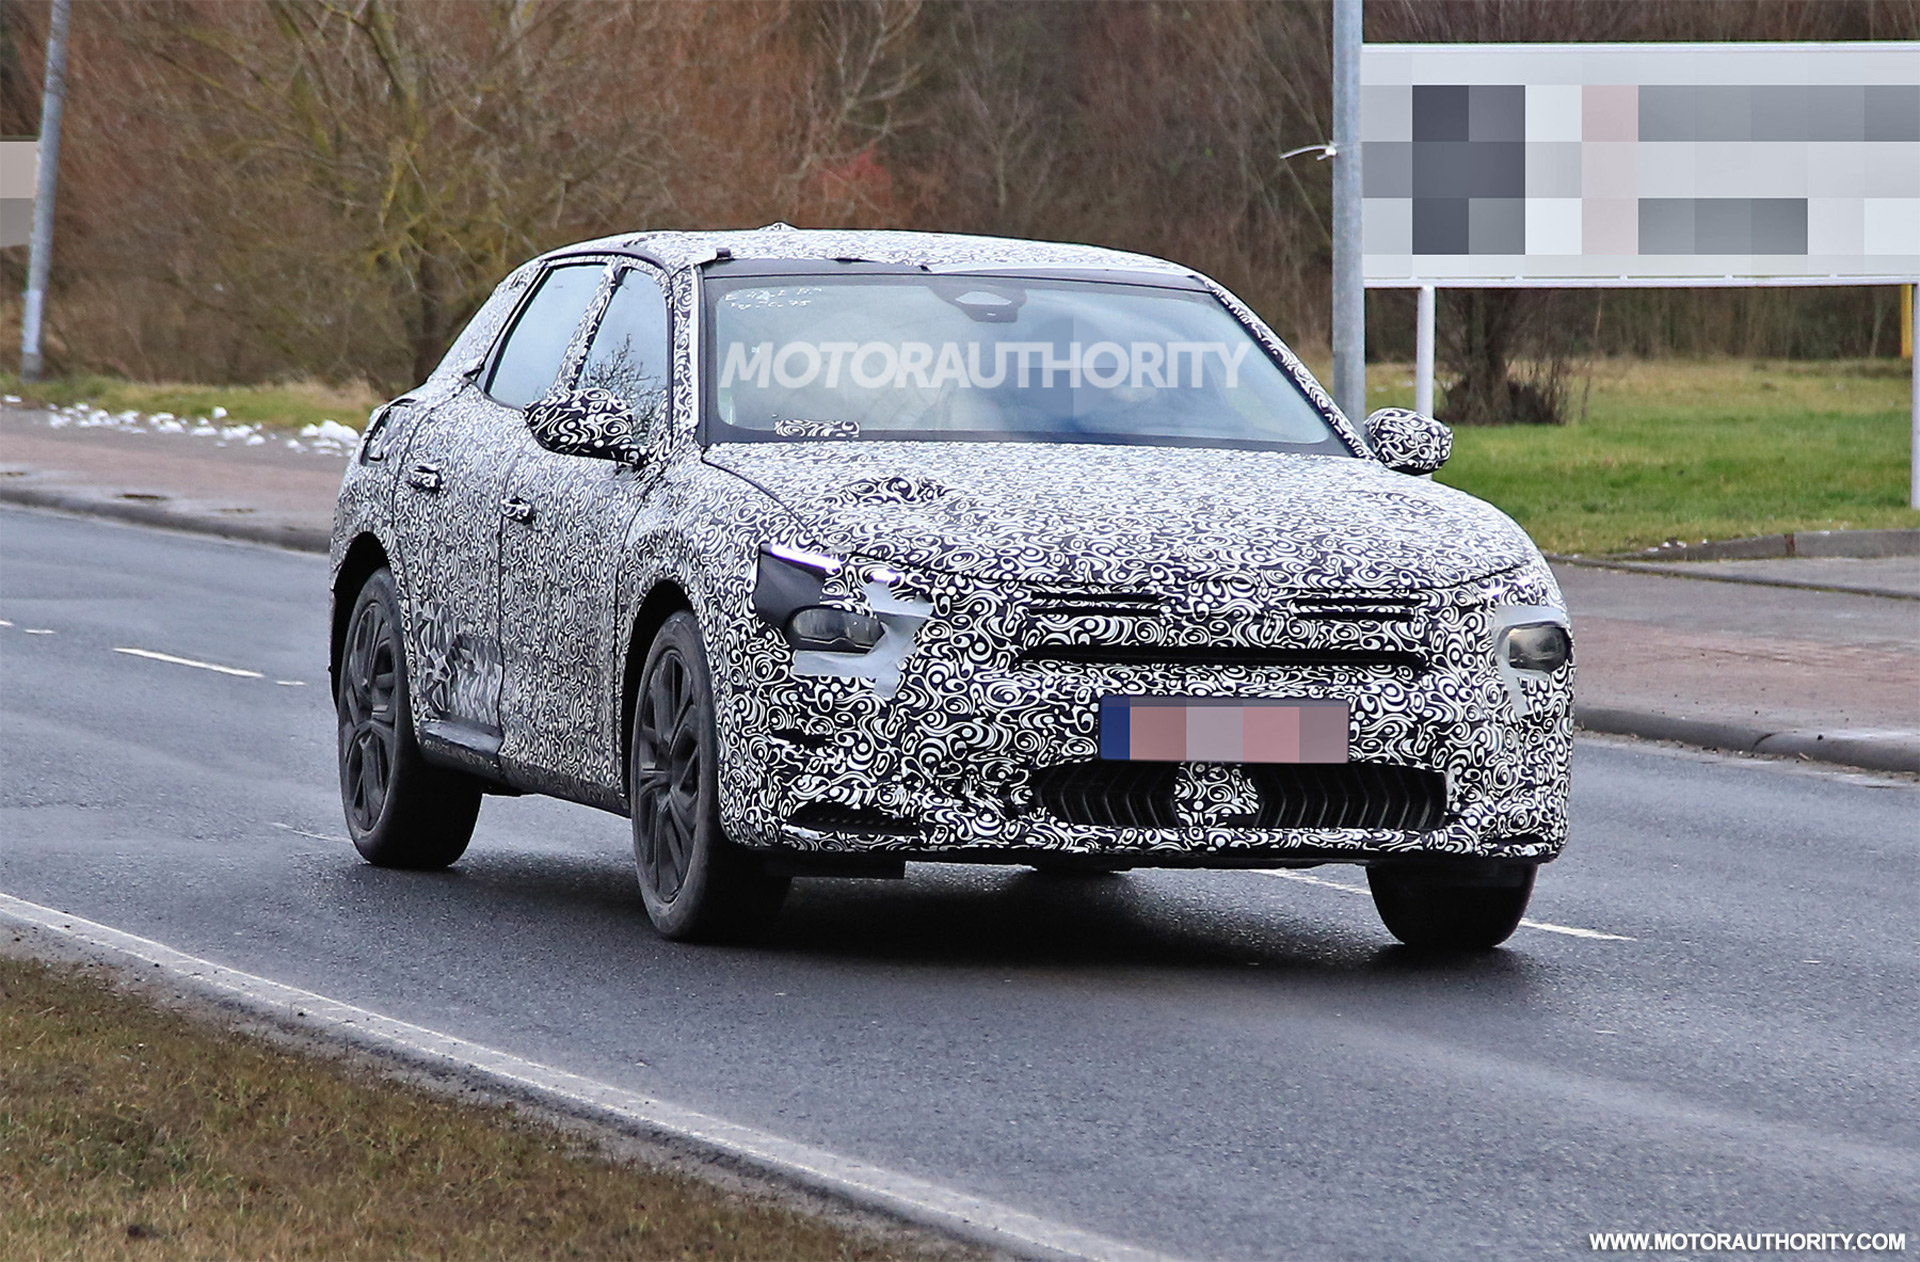 2022 Citroen C5 replacement spy shots: French brand's new flagship takes shape